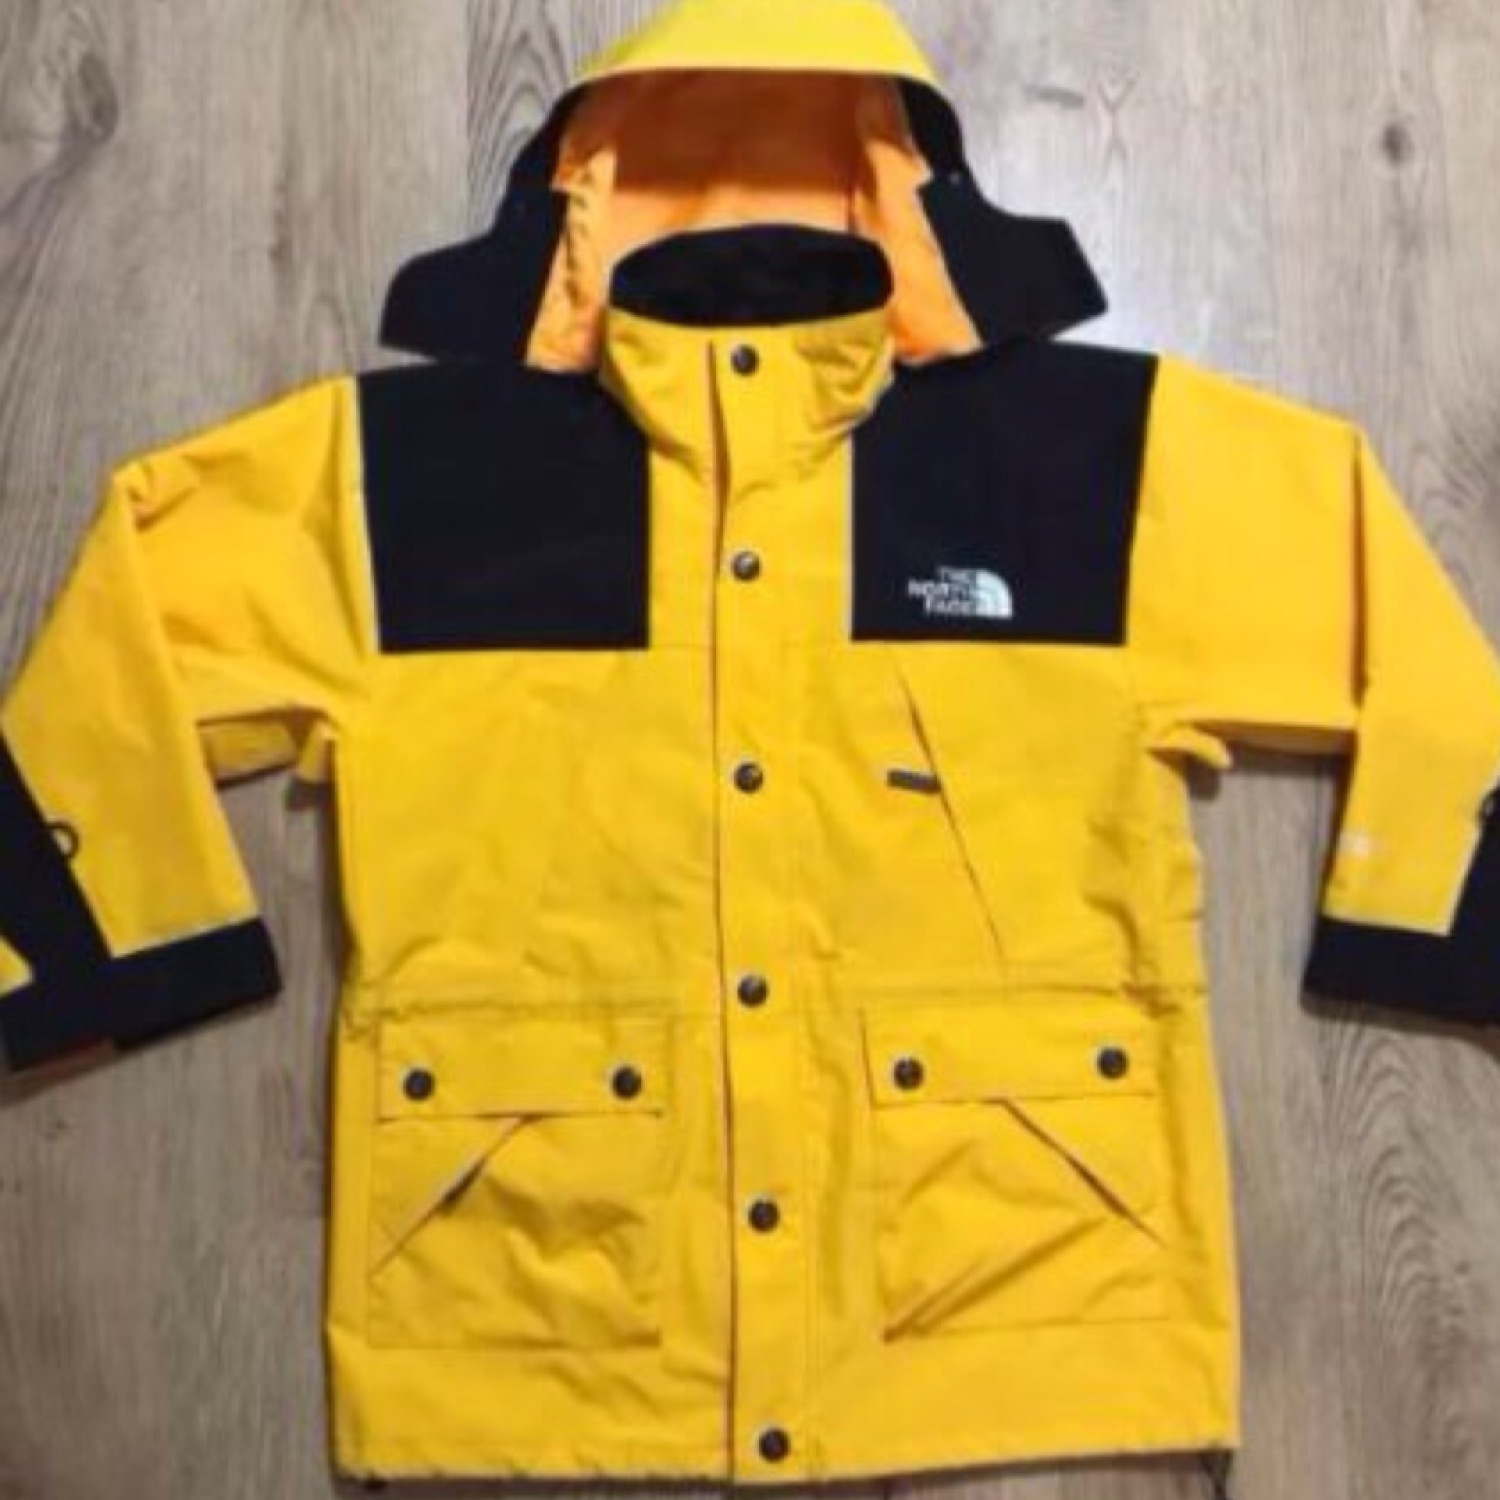 fbf953548 The North Face Gore-Tex Yellow/Black